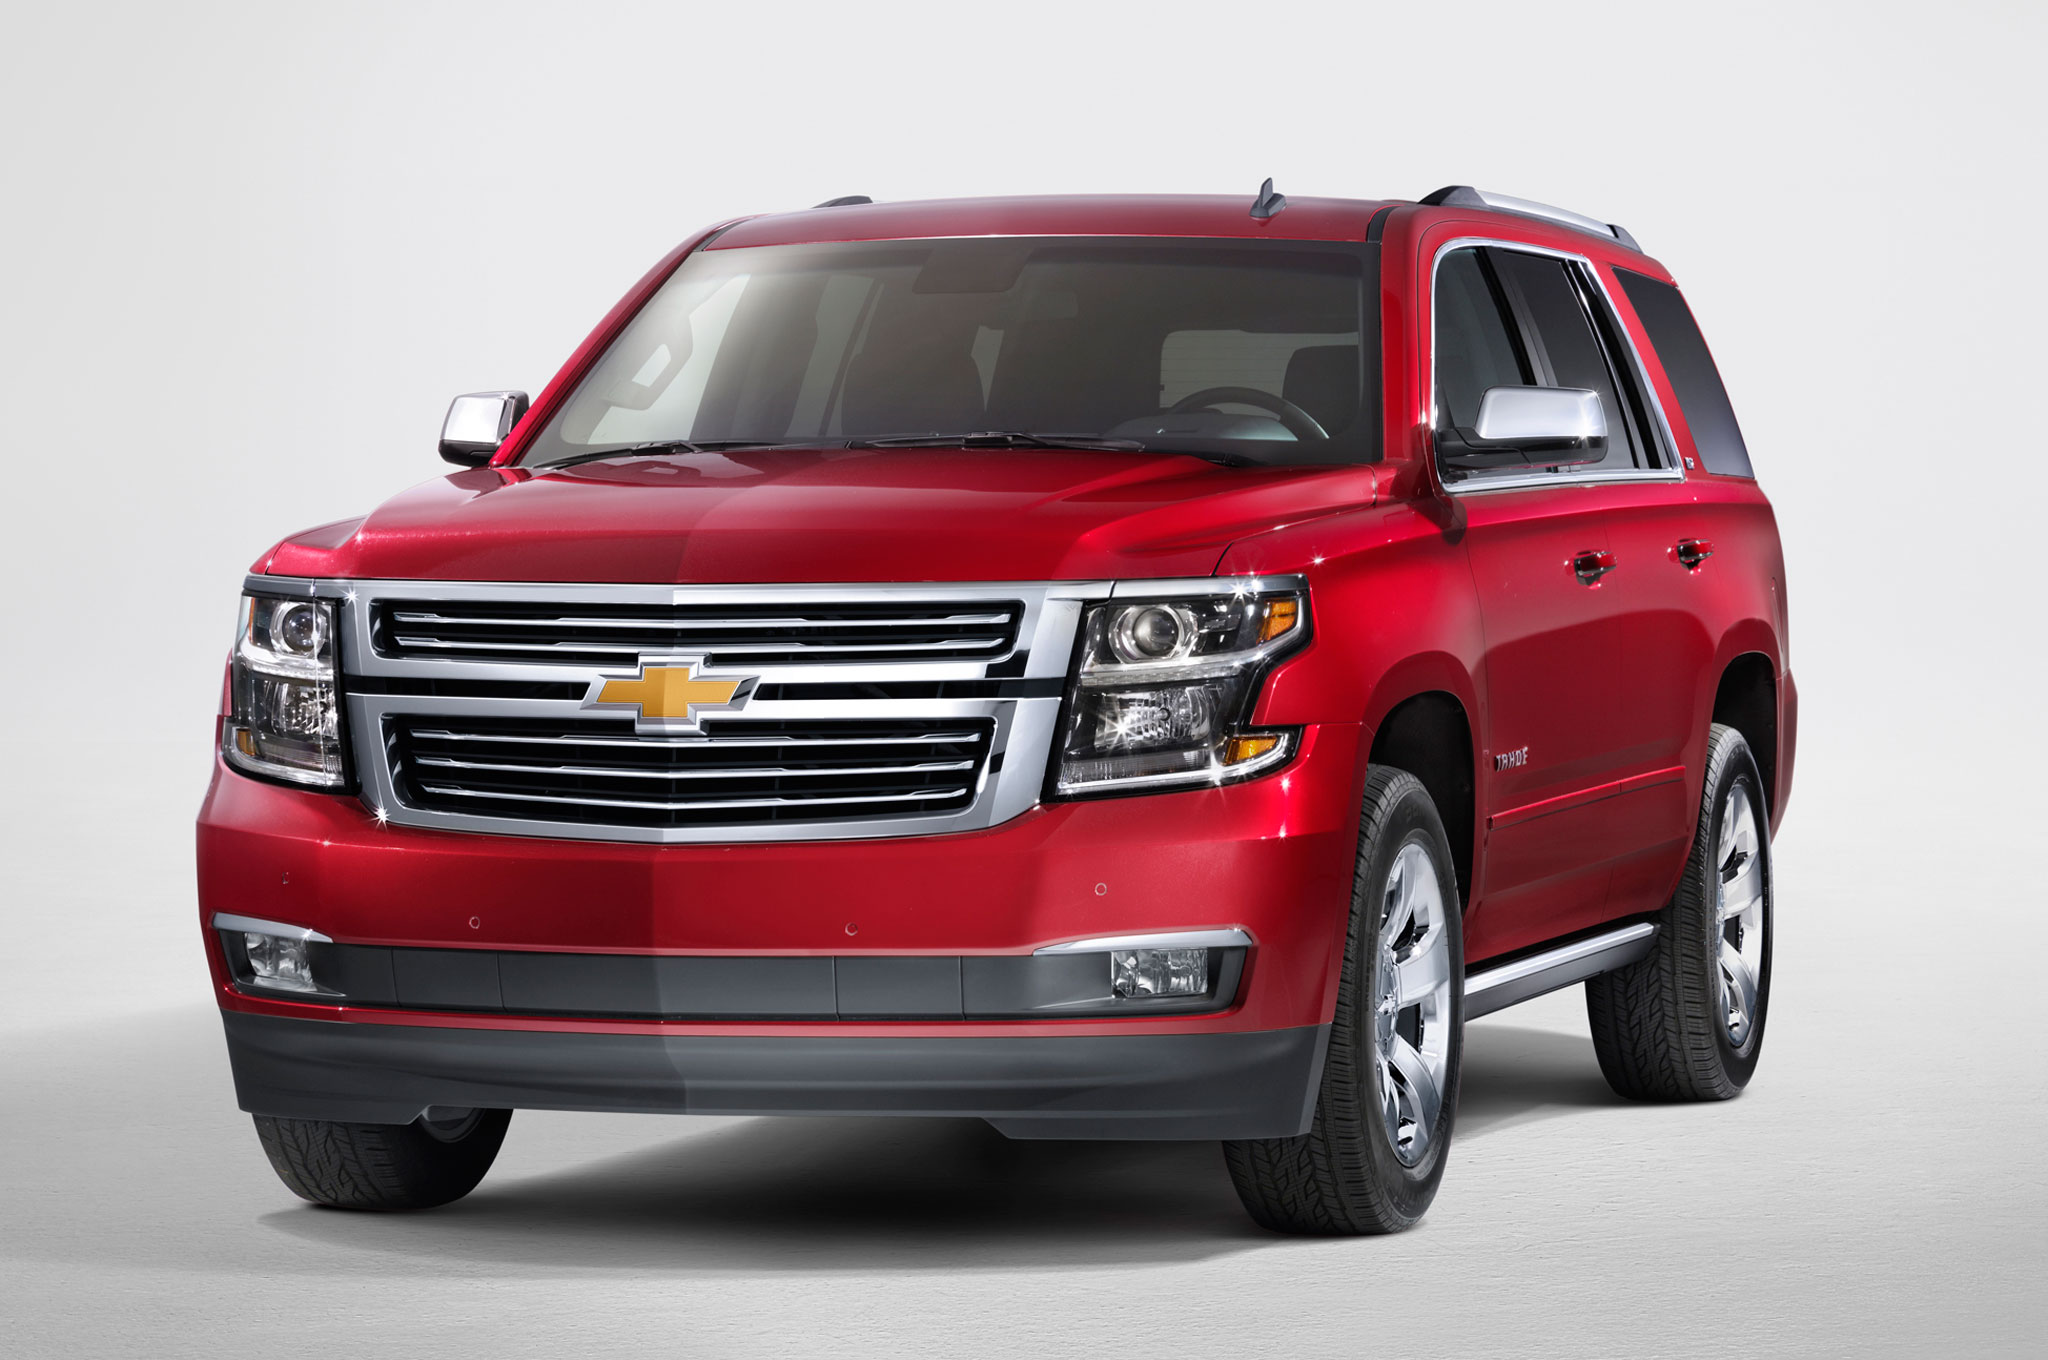 2015 Chevrolet Tahoe, Suburban Basic Specs Against Competition